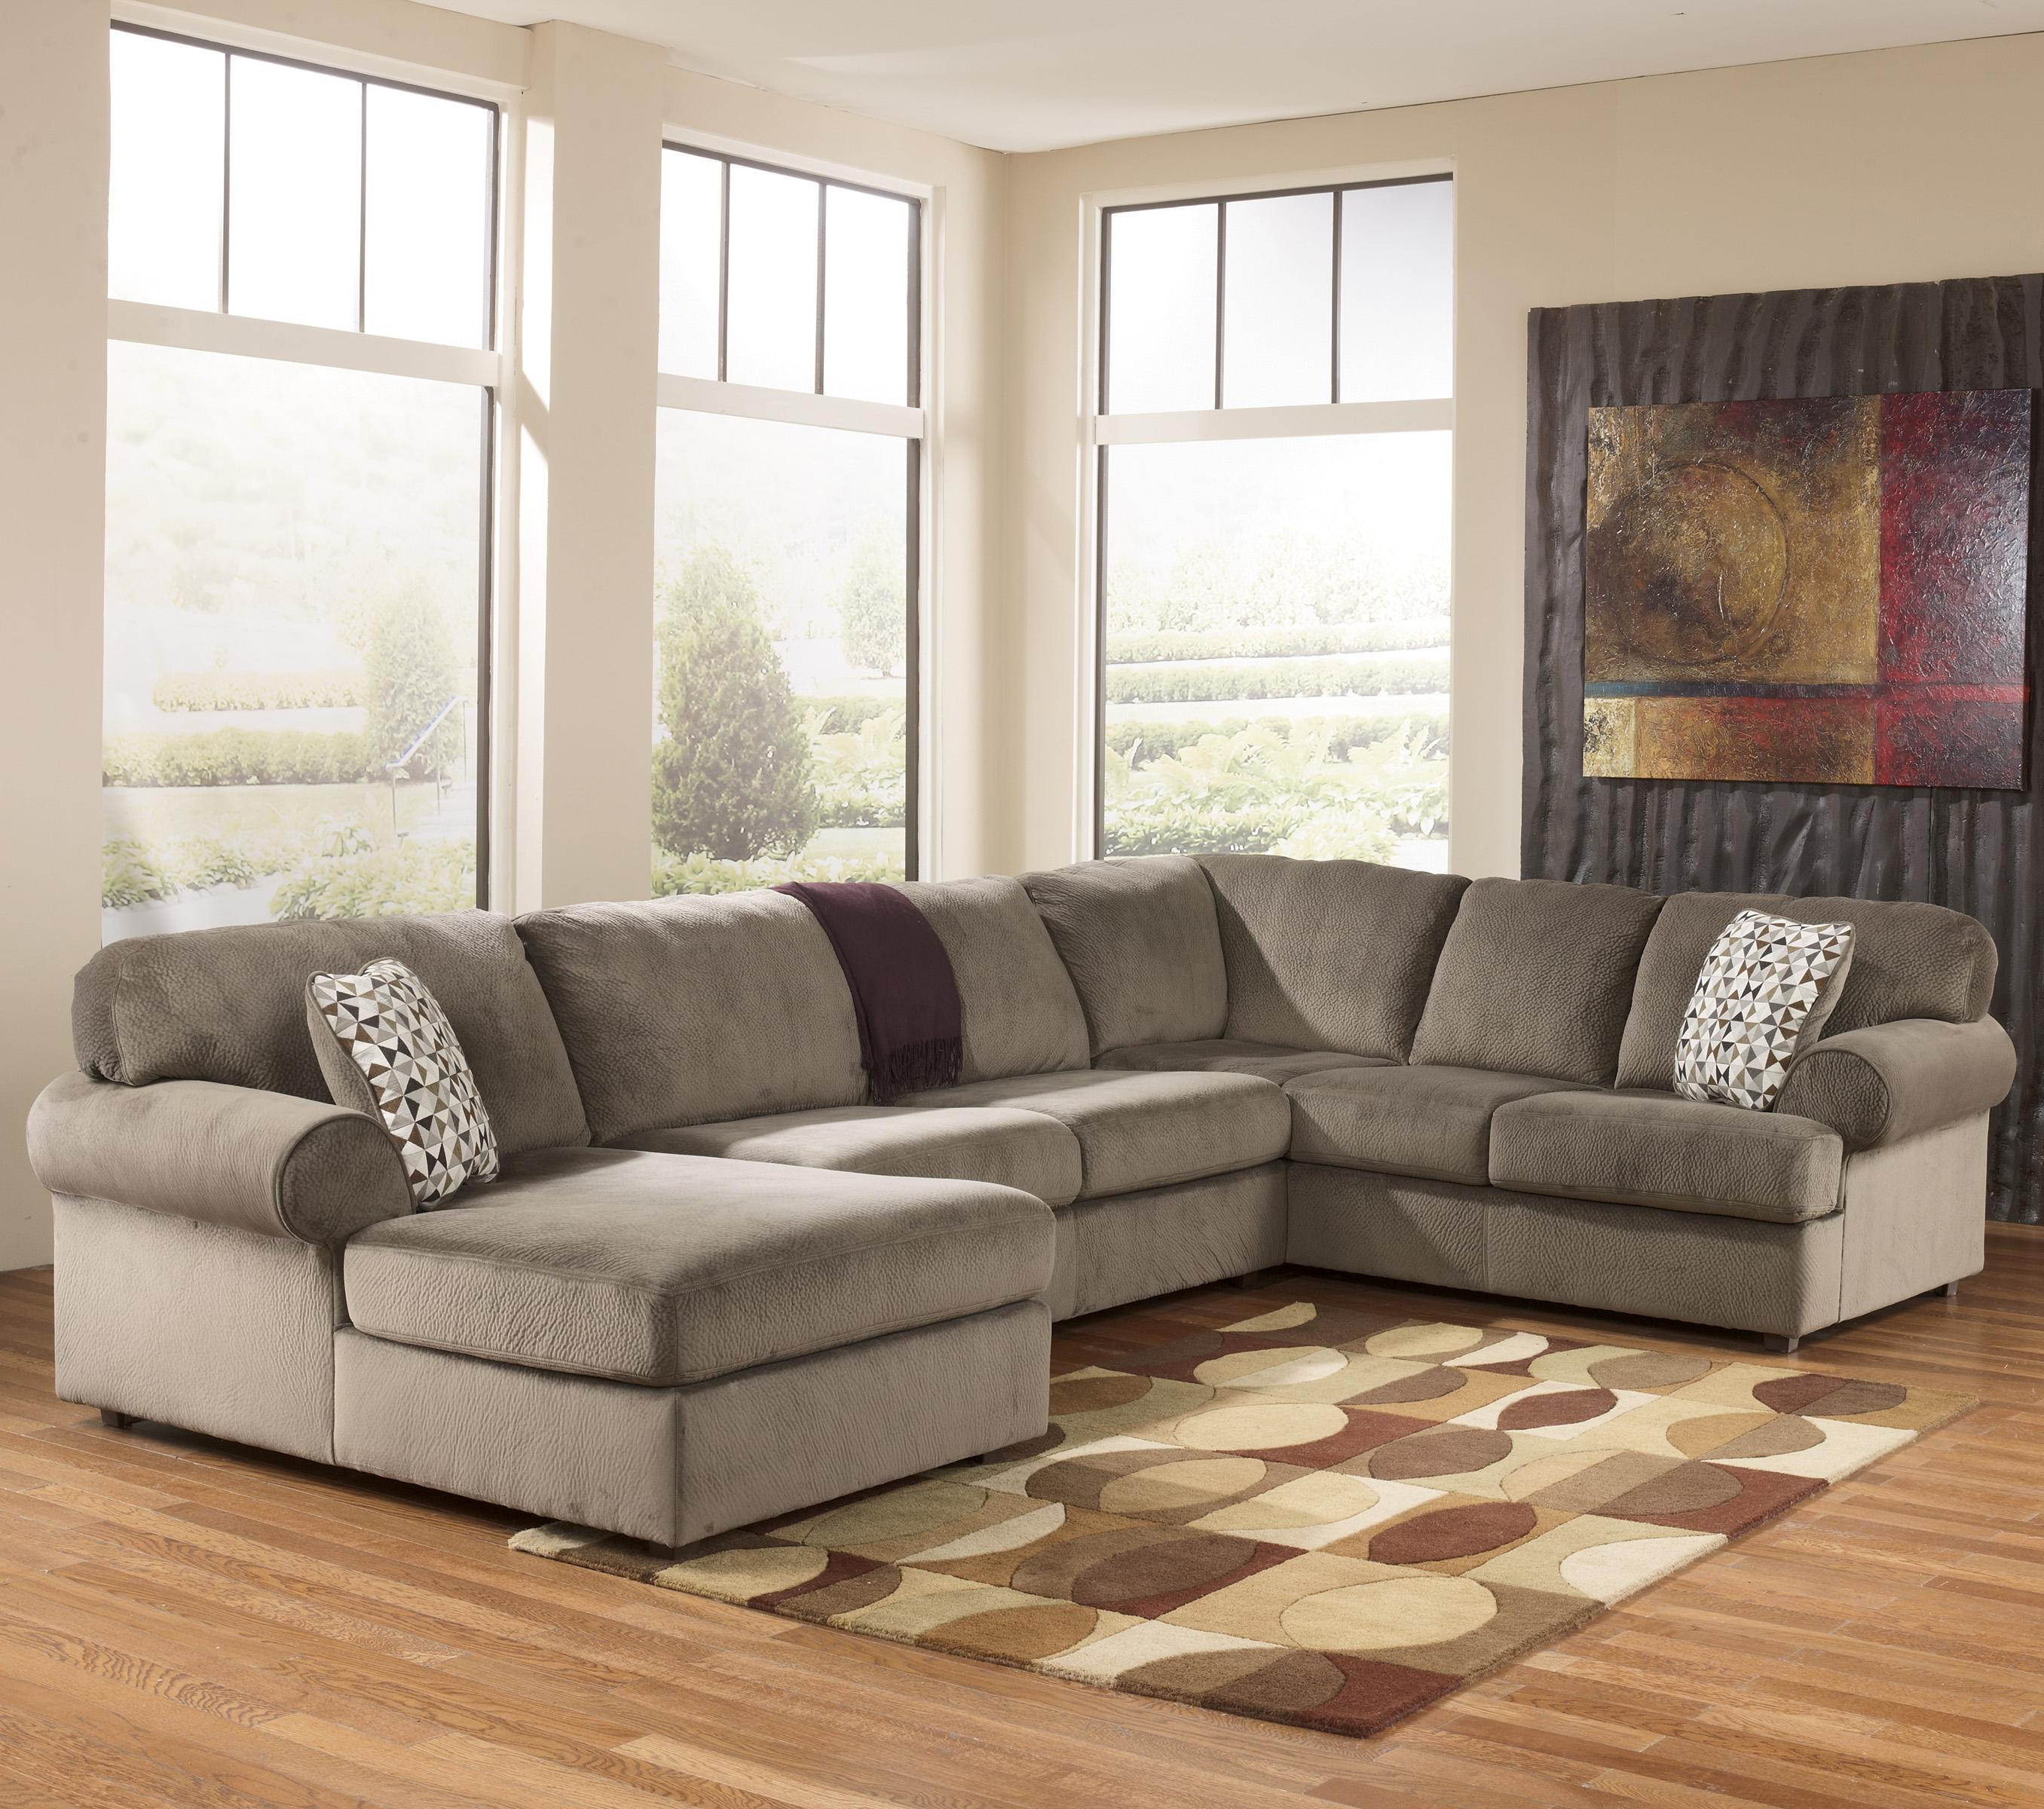 Laf Chaise Sectional Sofa (View 19 of 20)